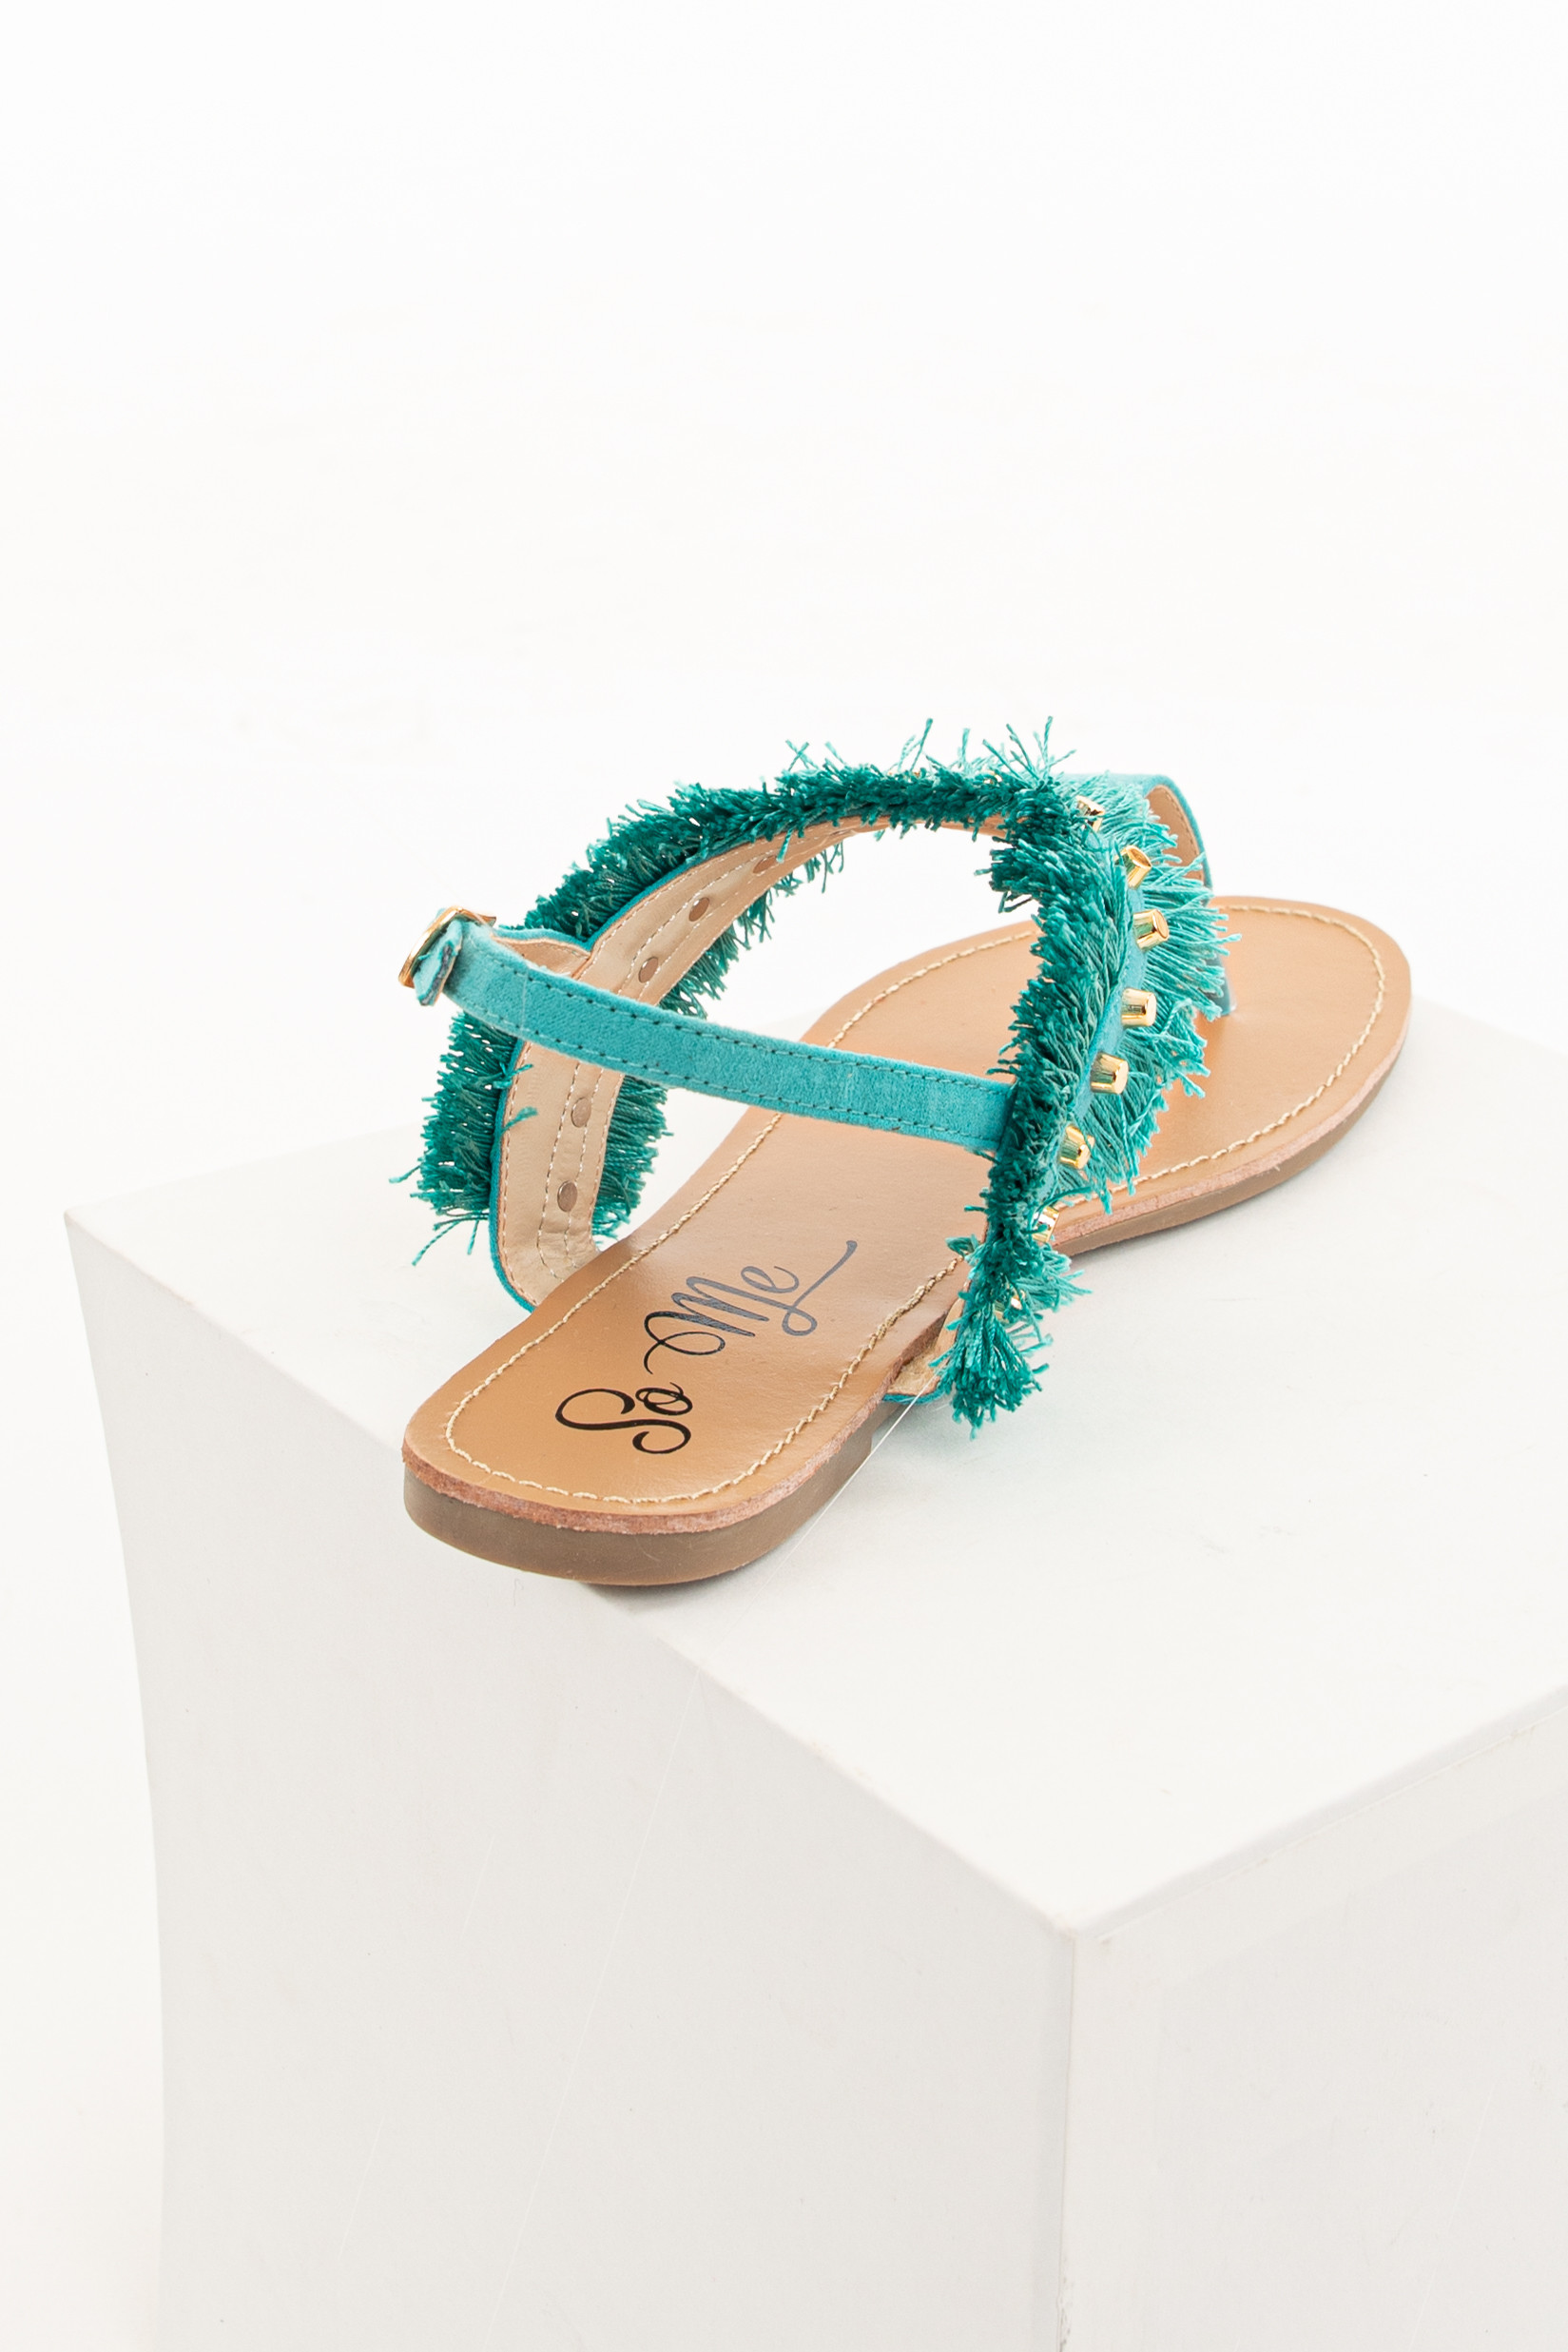 Teal Fringe Gladiator Sandals with Gold Stud Details